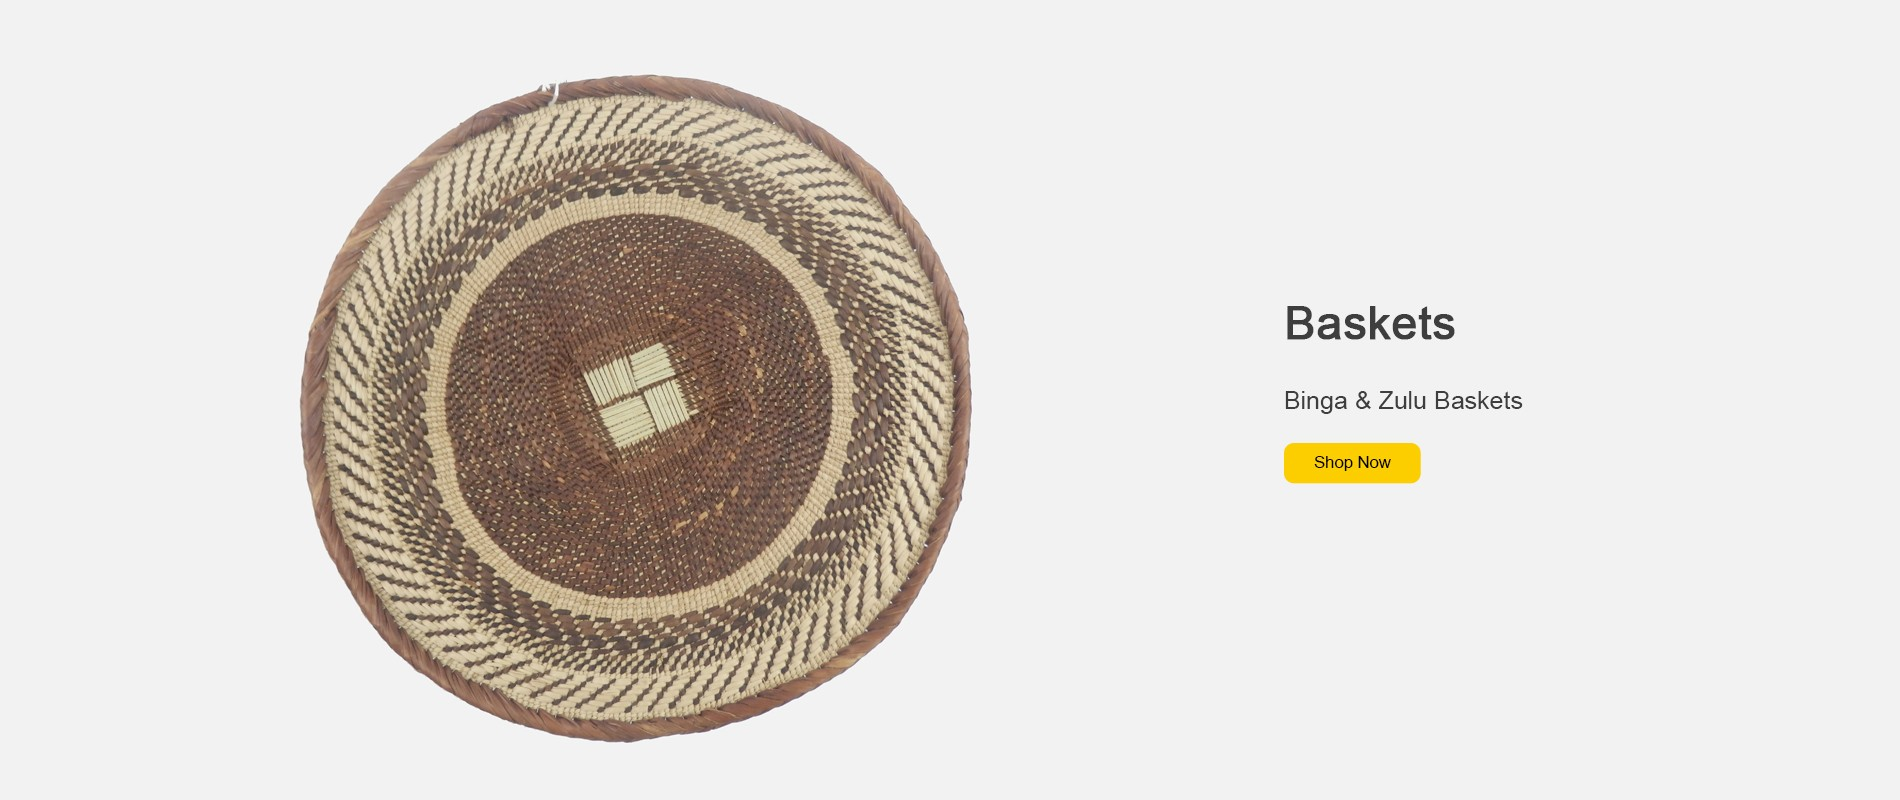 Hand woven range of Binga and Zulu Baskets